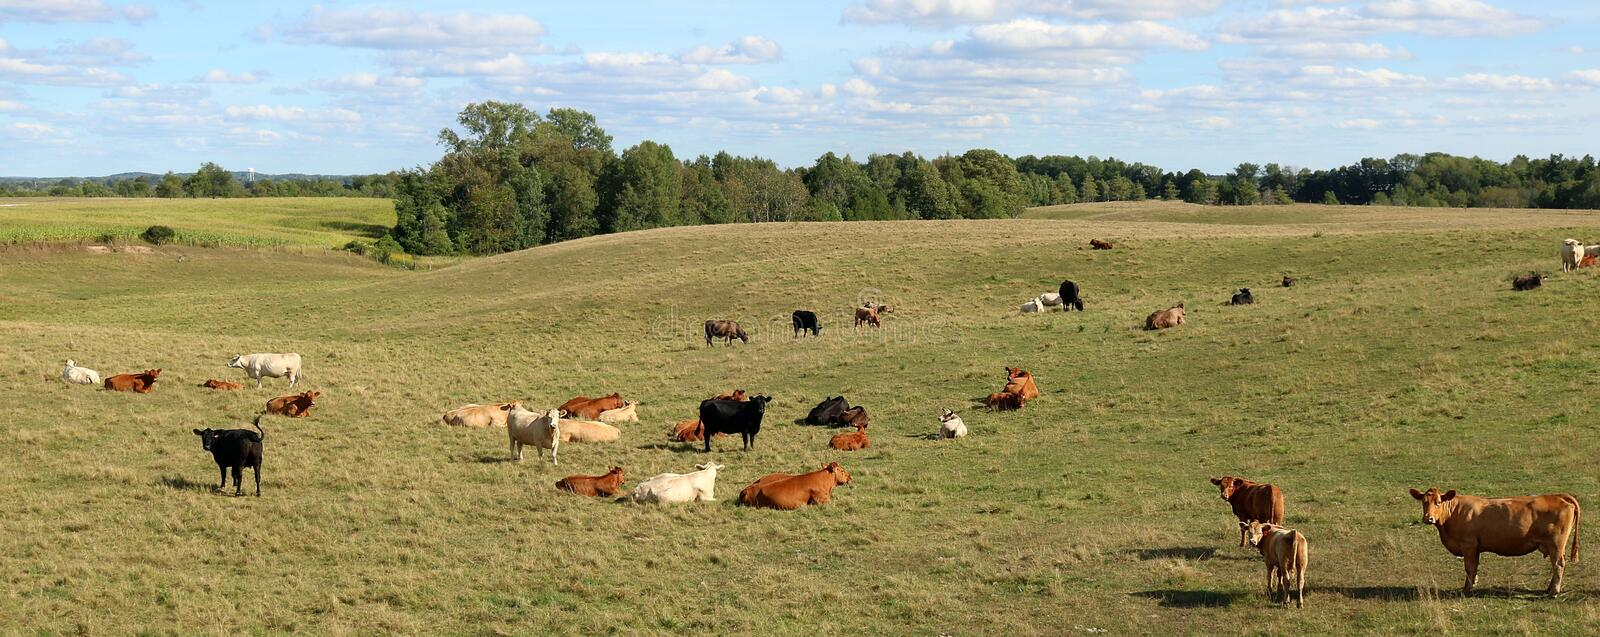 Angus or Limousine Cows and calves in the meadow. Herd of beef cows and calves in the field with mom and two calves in foreground on a beautiful sunny day royalty free stock photo